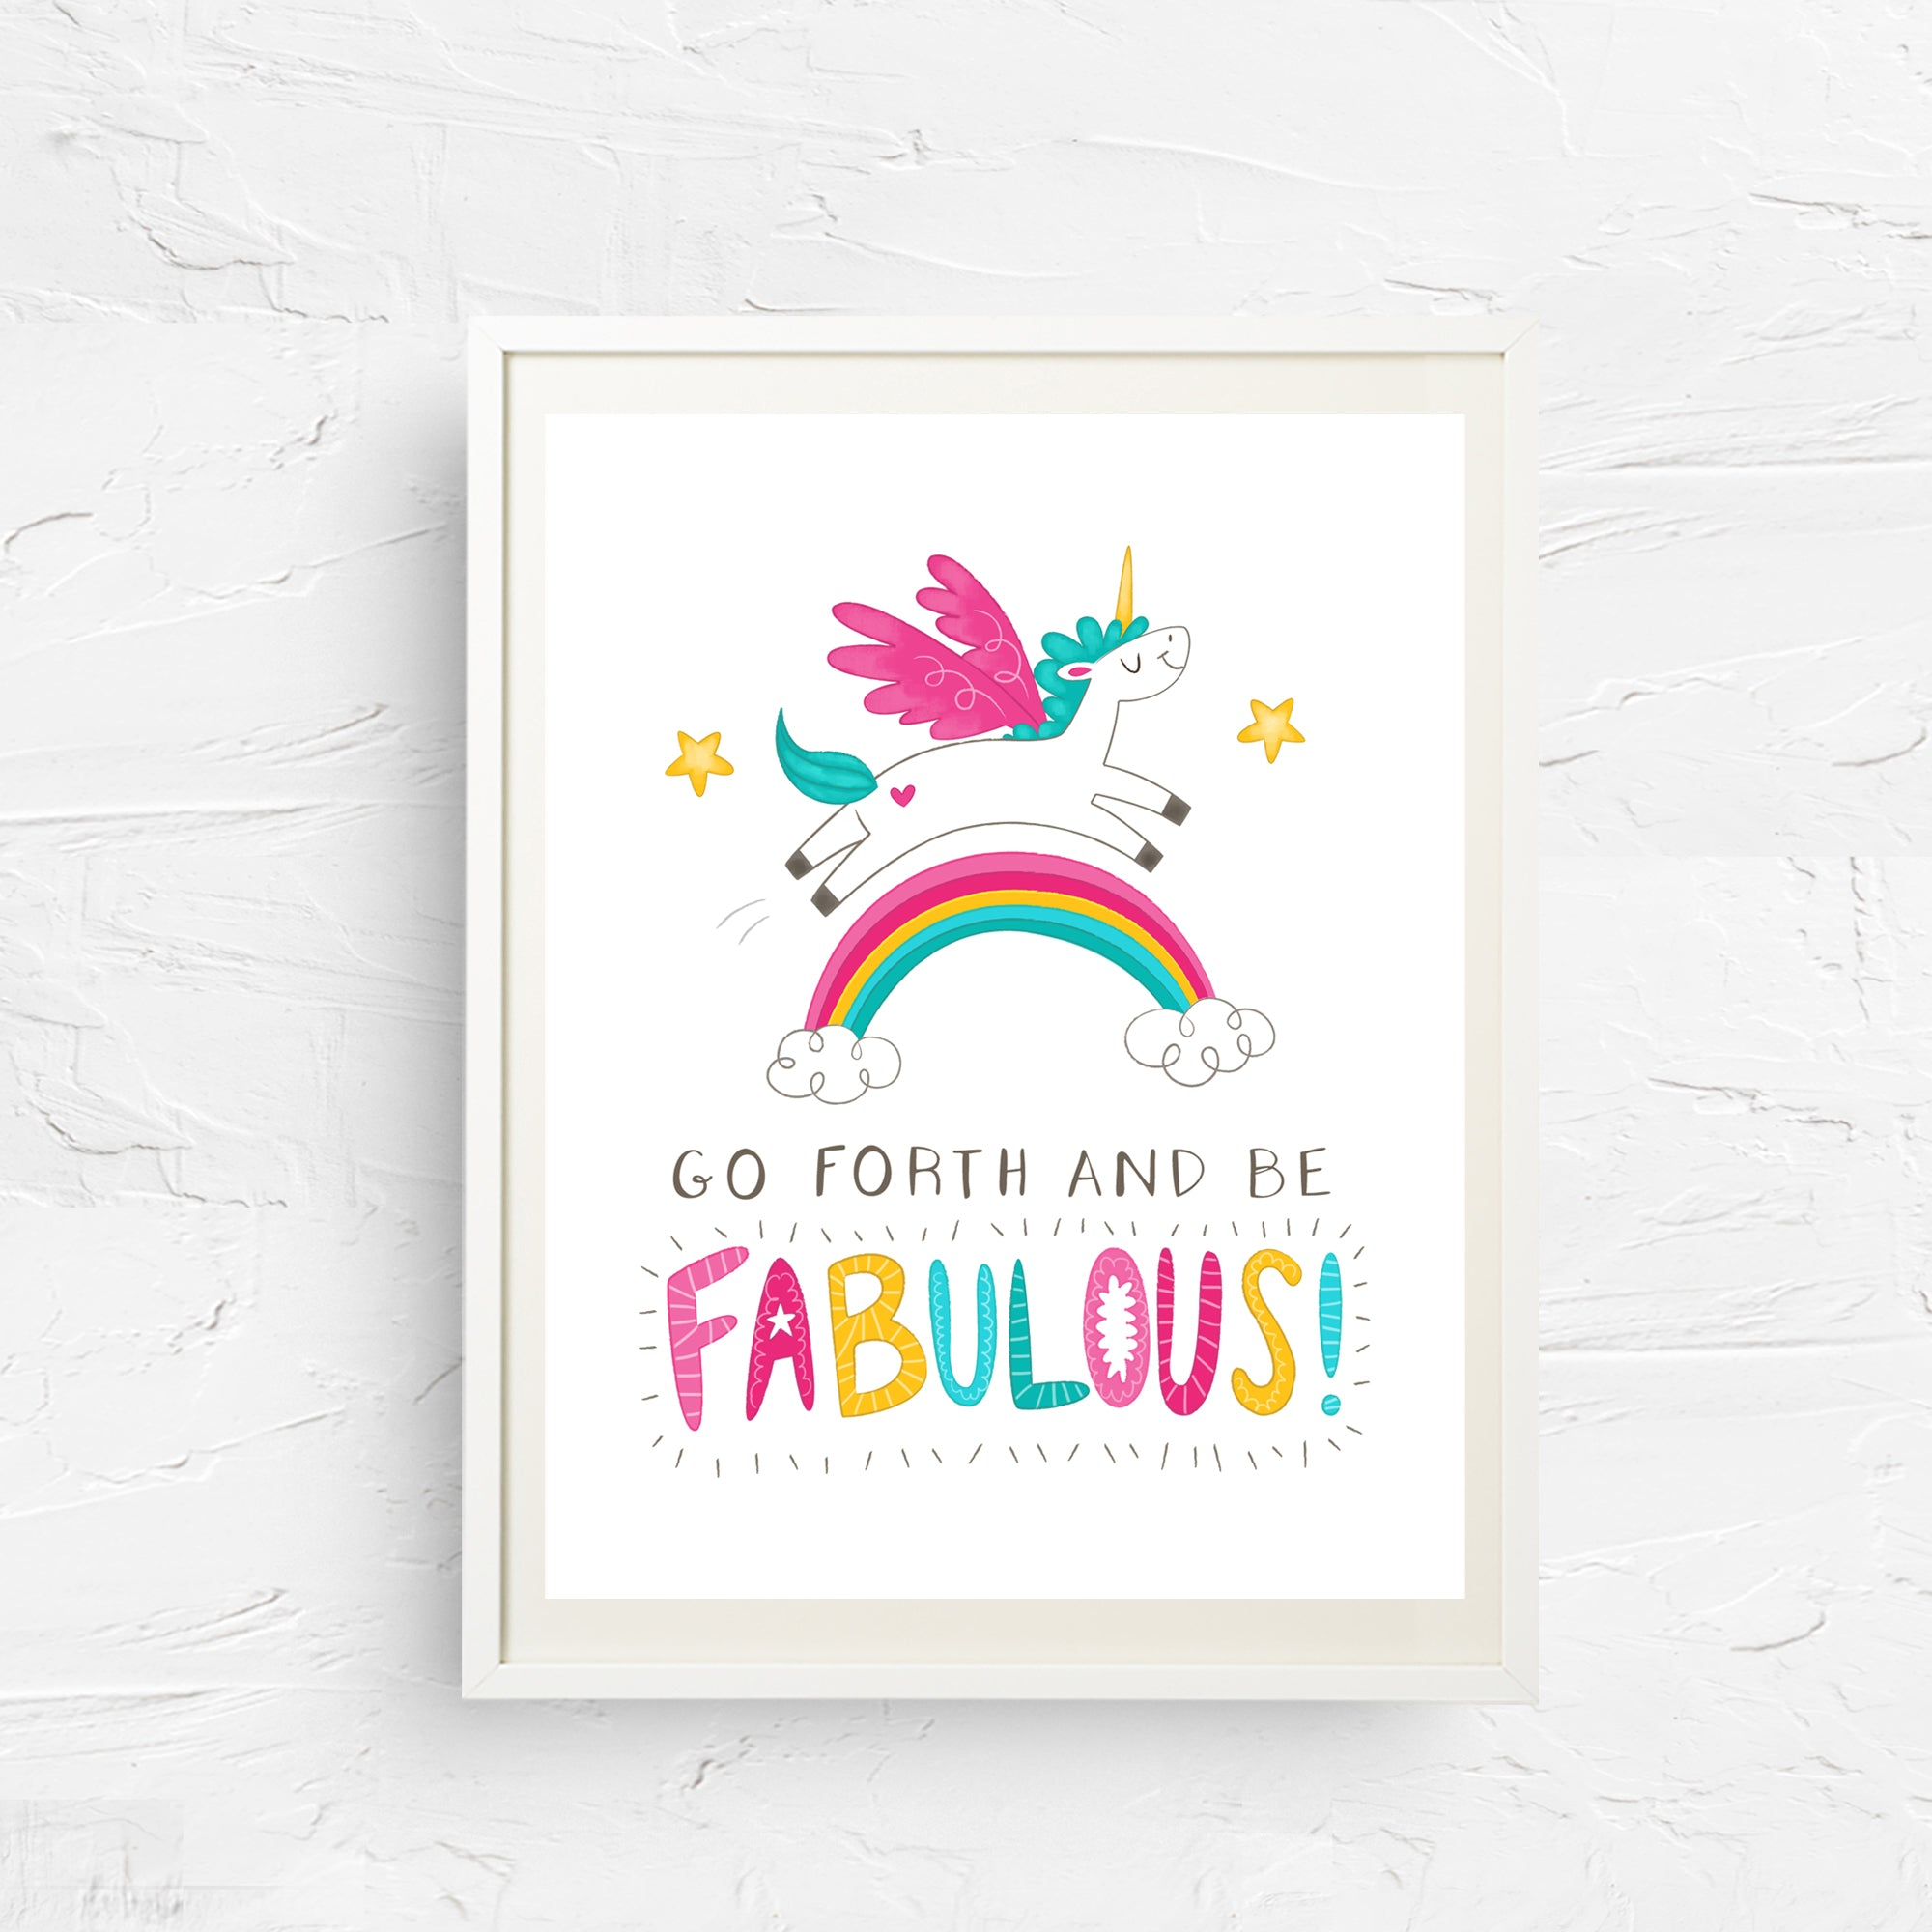 8x10, 11x14, art print, physical print, wall decor, free shipping, sale, coupon code, unicorn print, rainbow print, children's wall art, gift for girl, birthday present